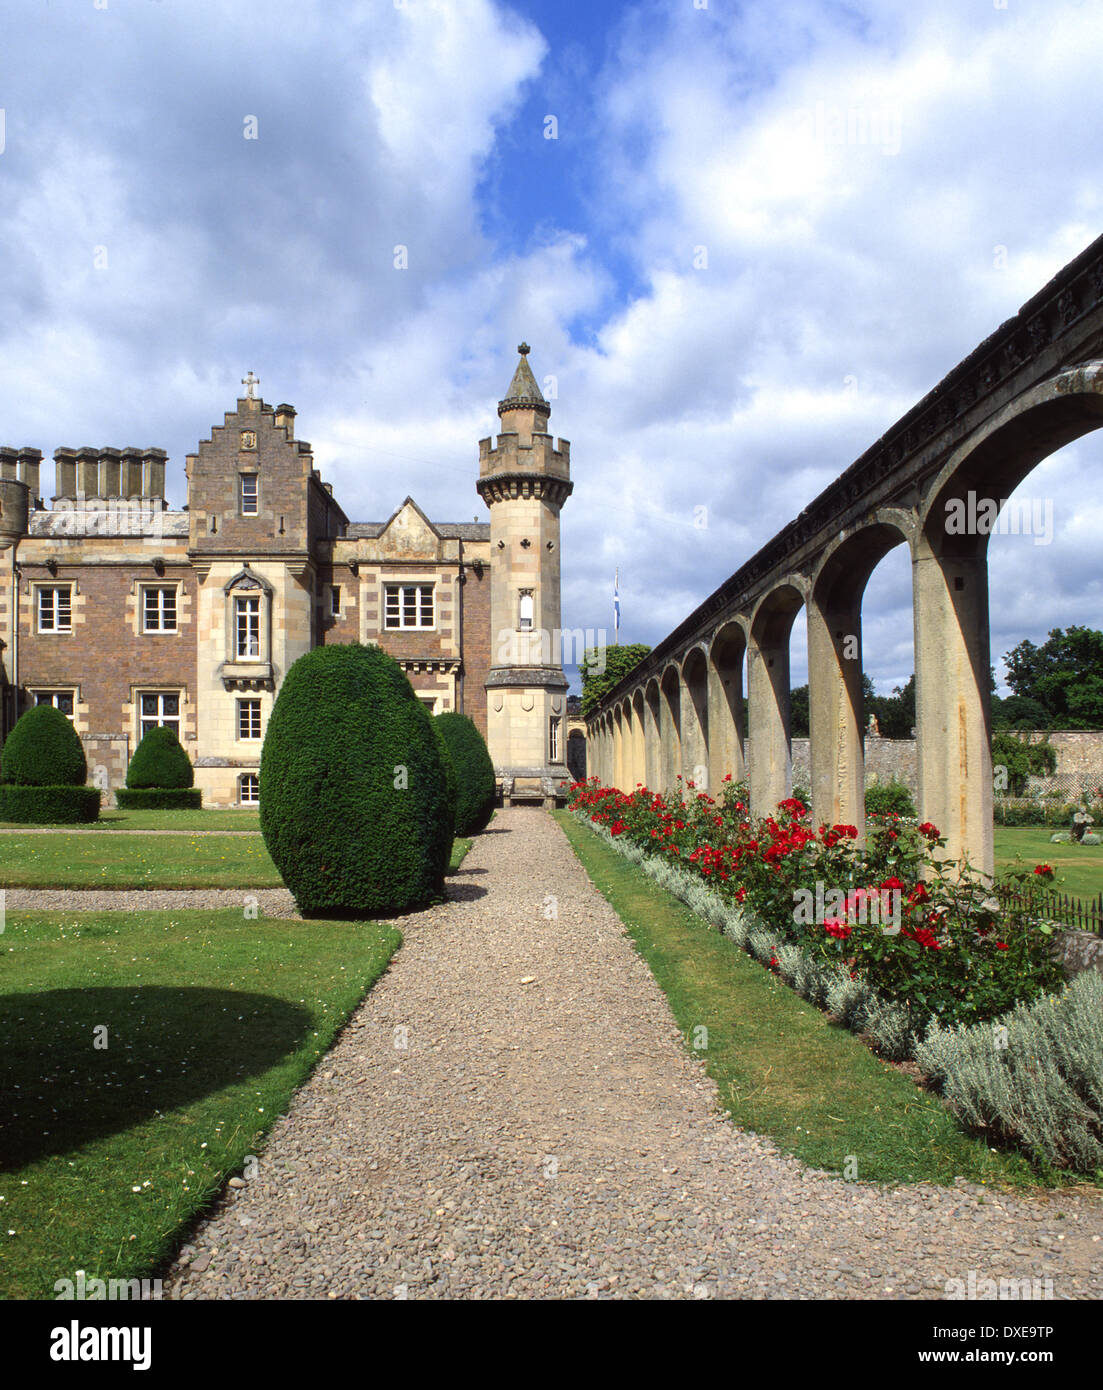 Abbotsford house, home of Sir Walter Scott, Scottish Borders. - Stock Image